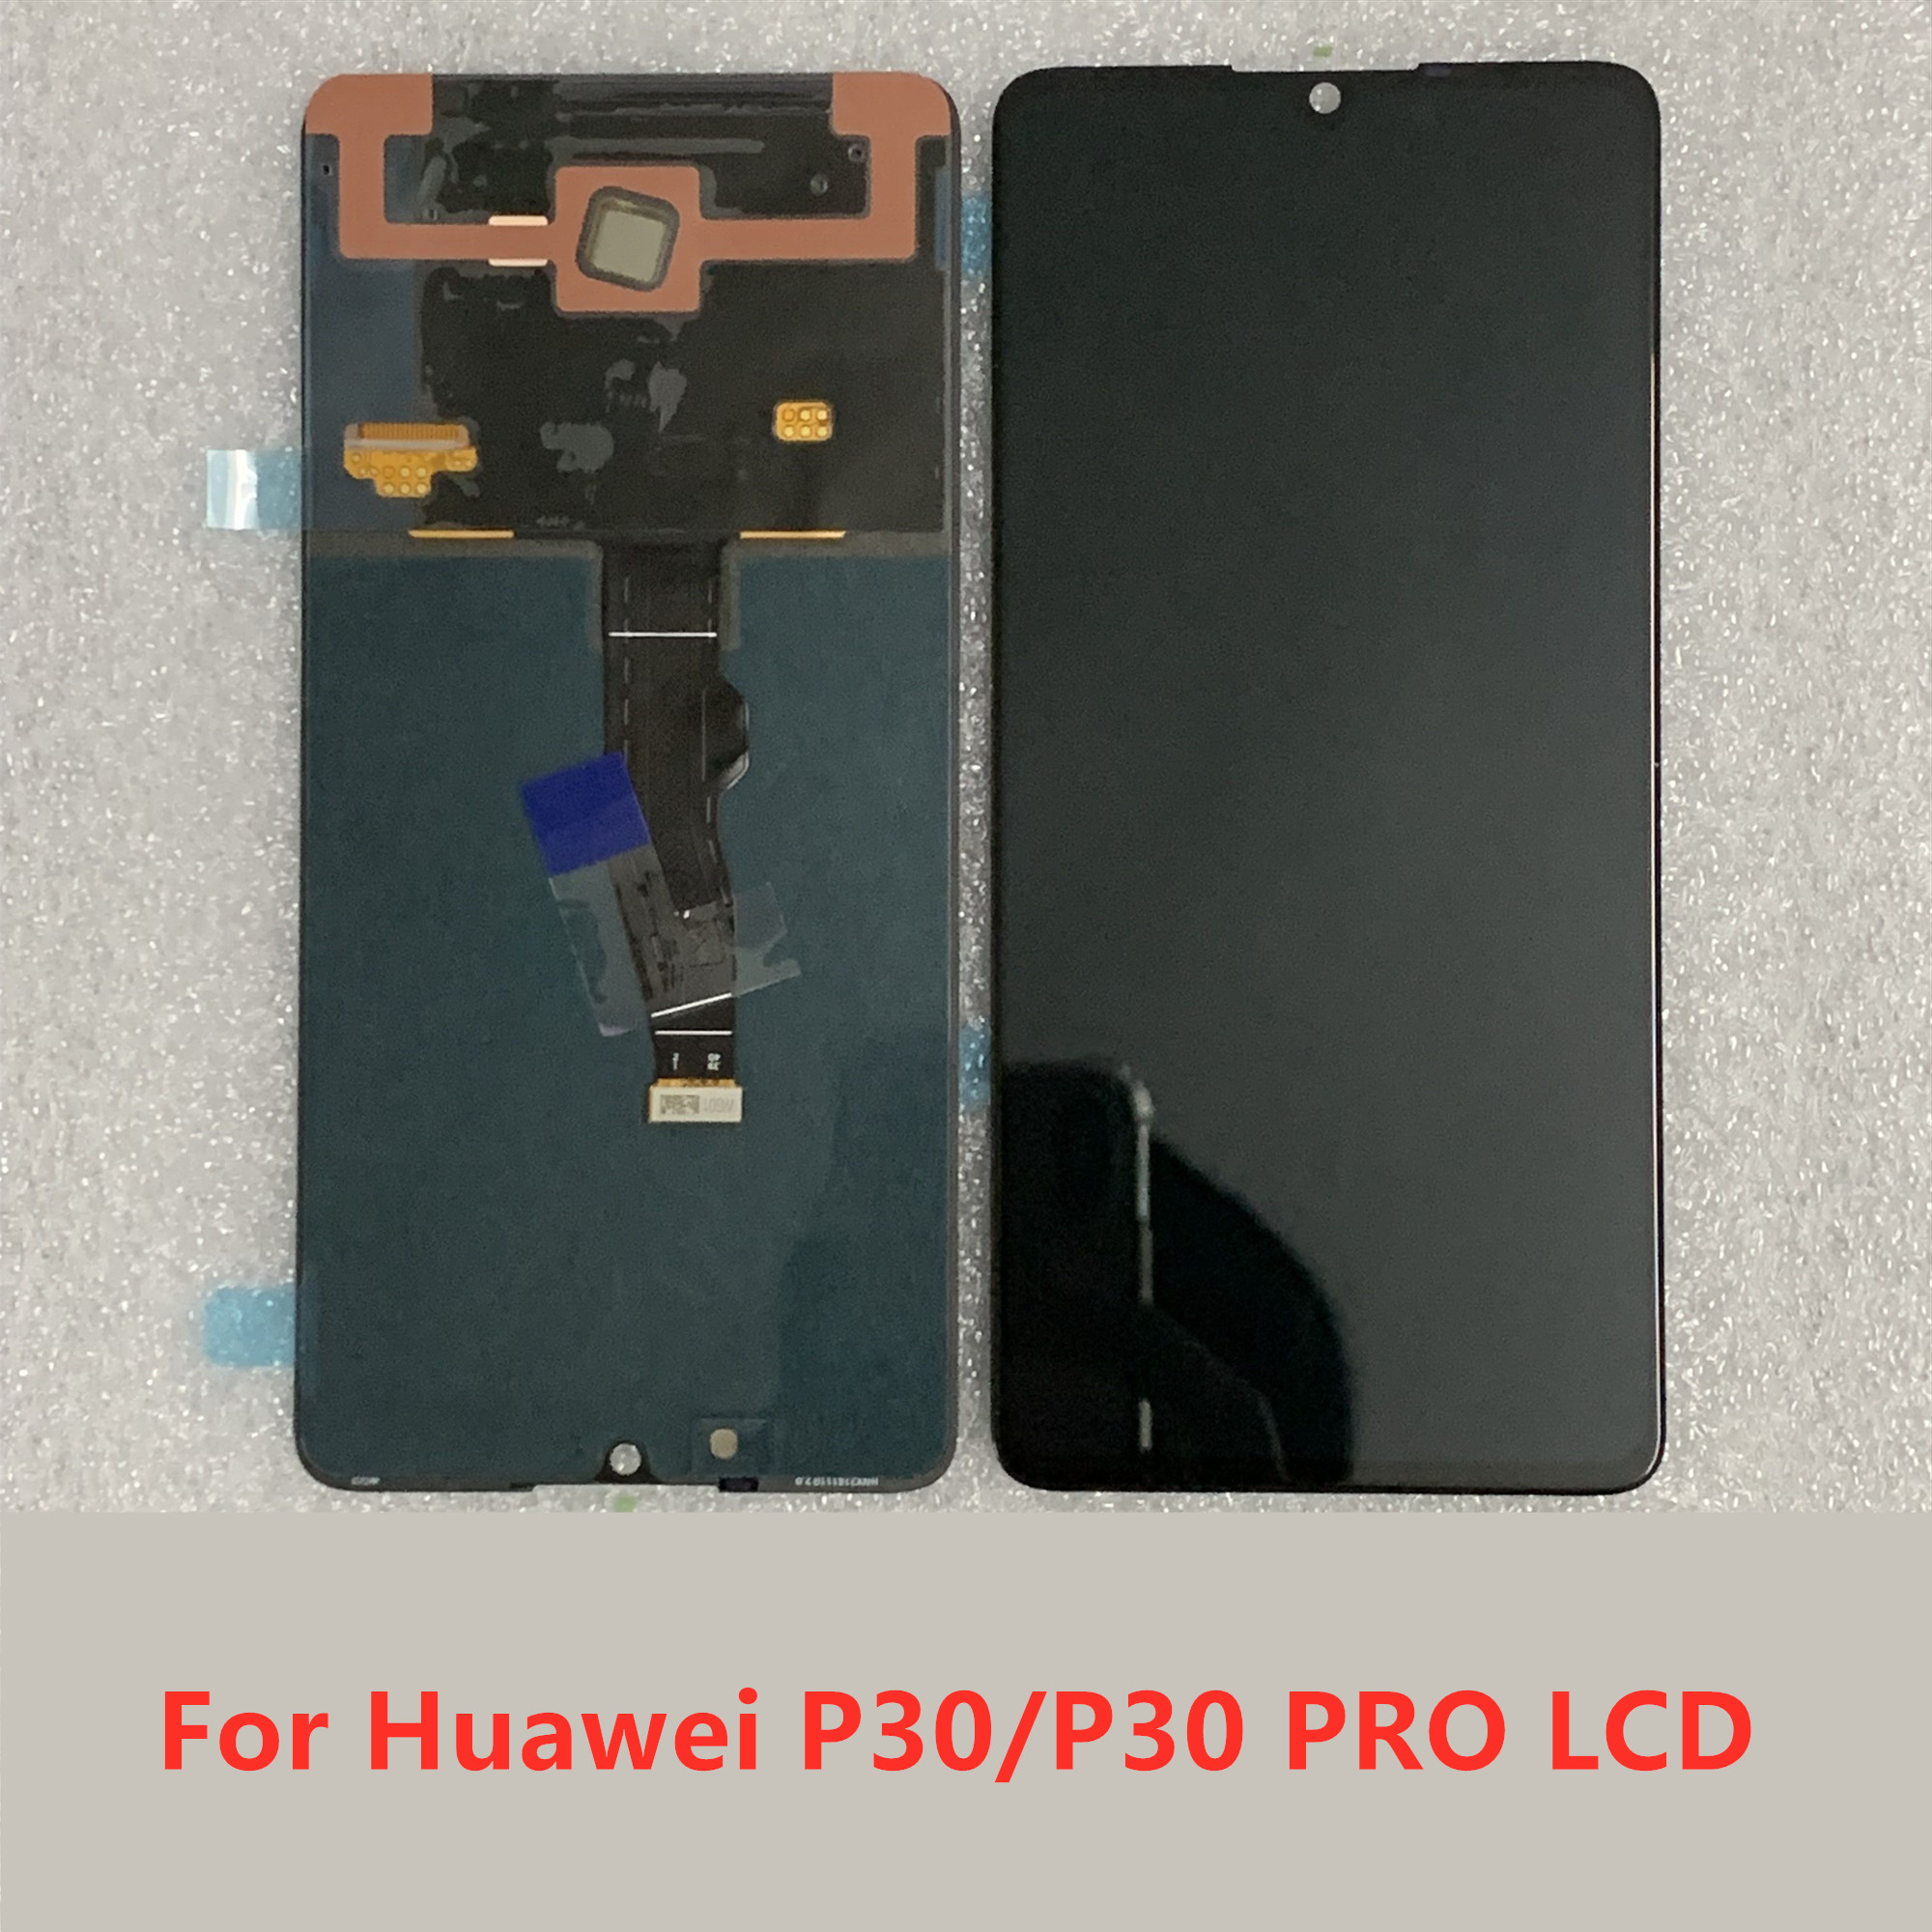 For Huawei P30 Pro Display Touch Screen Digitizer ELE L09 L29 For Huawei P30 Display VOG L04 L09 L29 Screen Replacement-in Mobile Phone LCD Screens from Cellphones & Telecommunications